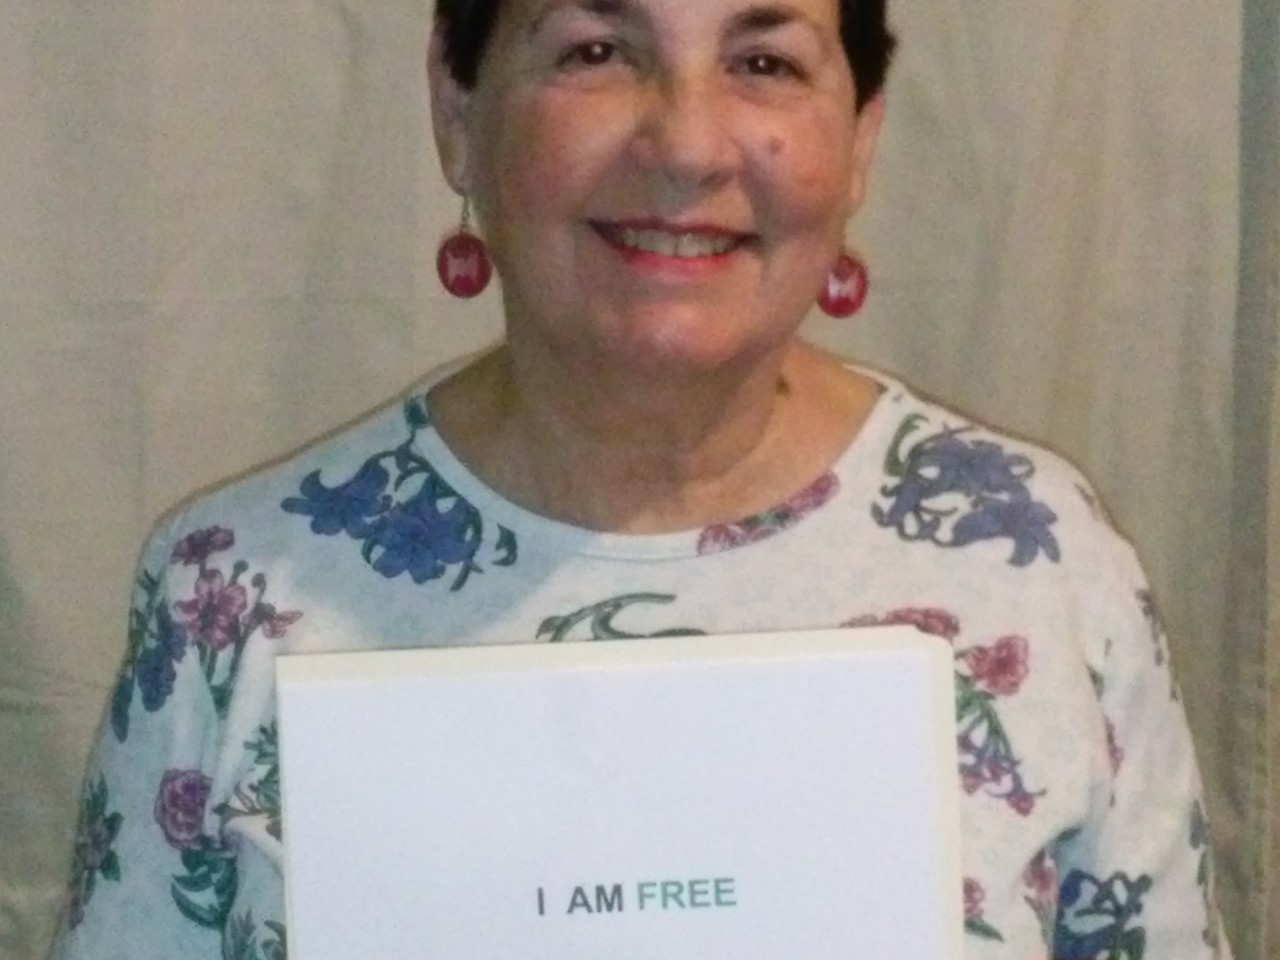 Lynn M - free from abuse